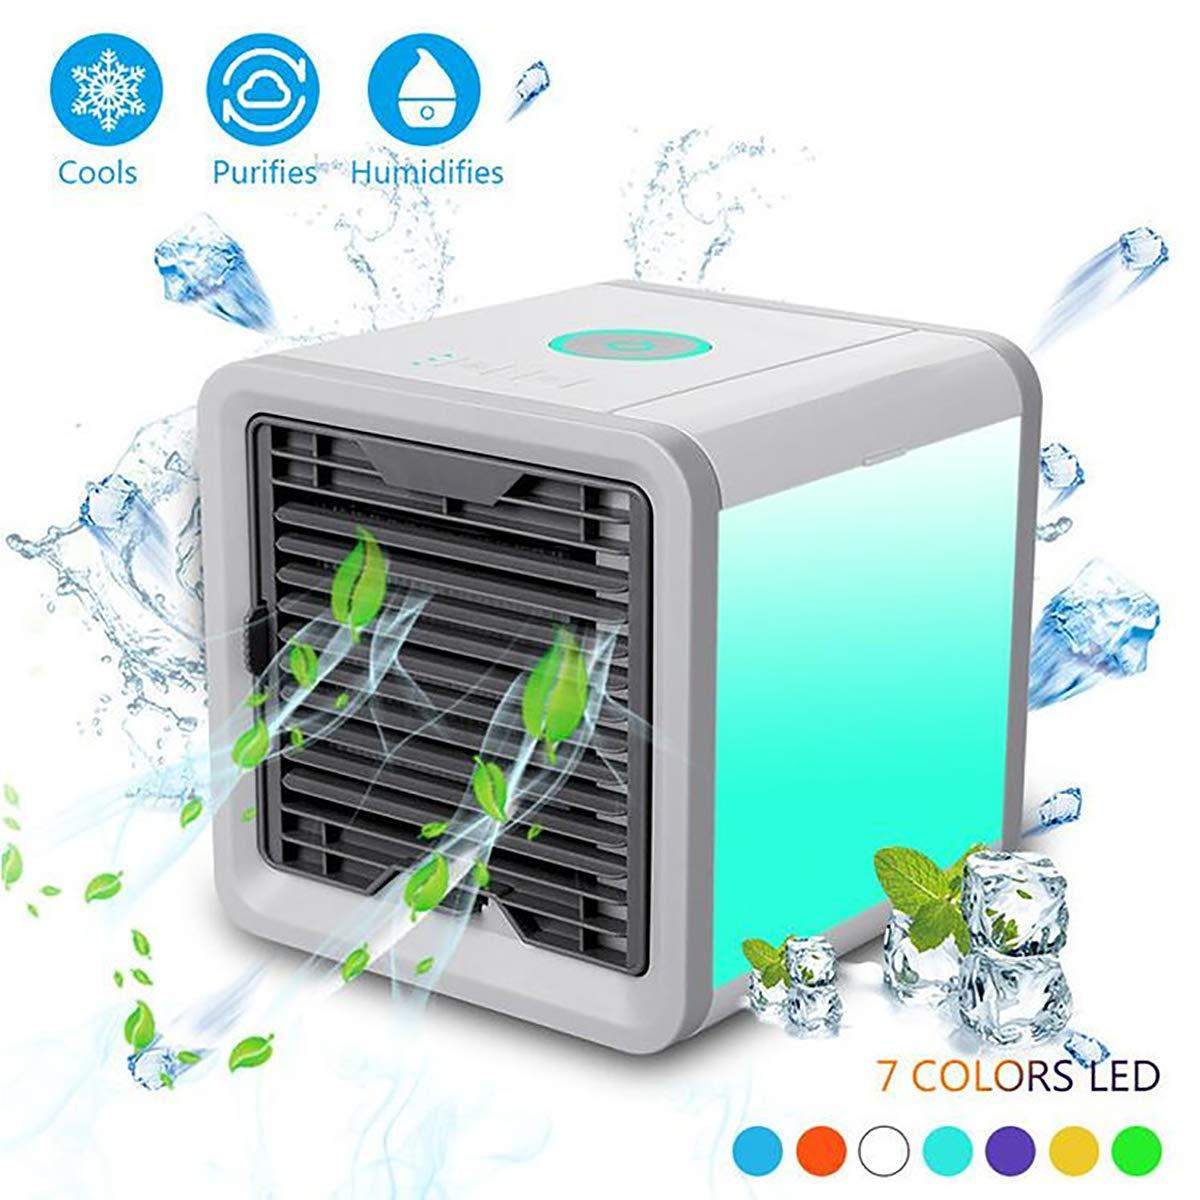 Air Conditioner Fan Personal Space Air Cooler Desktop Fan Mini Air Circulator Purifier Cooler with Portable Handle and Night Light for Home Room Office Outdoors Blue